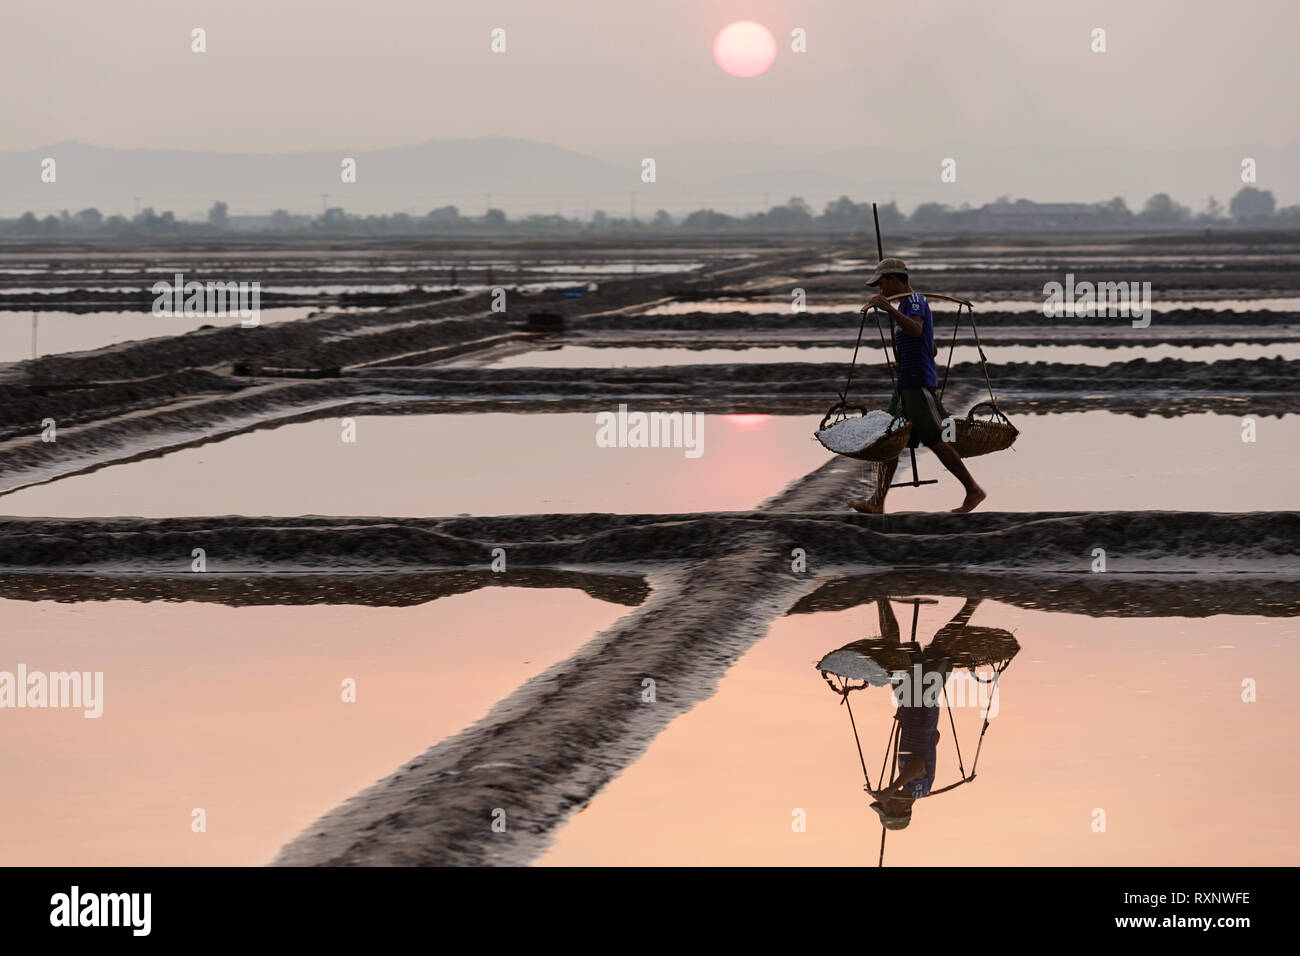 Cambodia, Kampot province, Kampot, salt harvest, man carries freshly